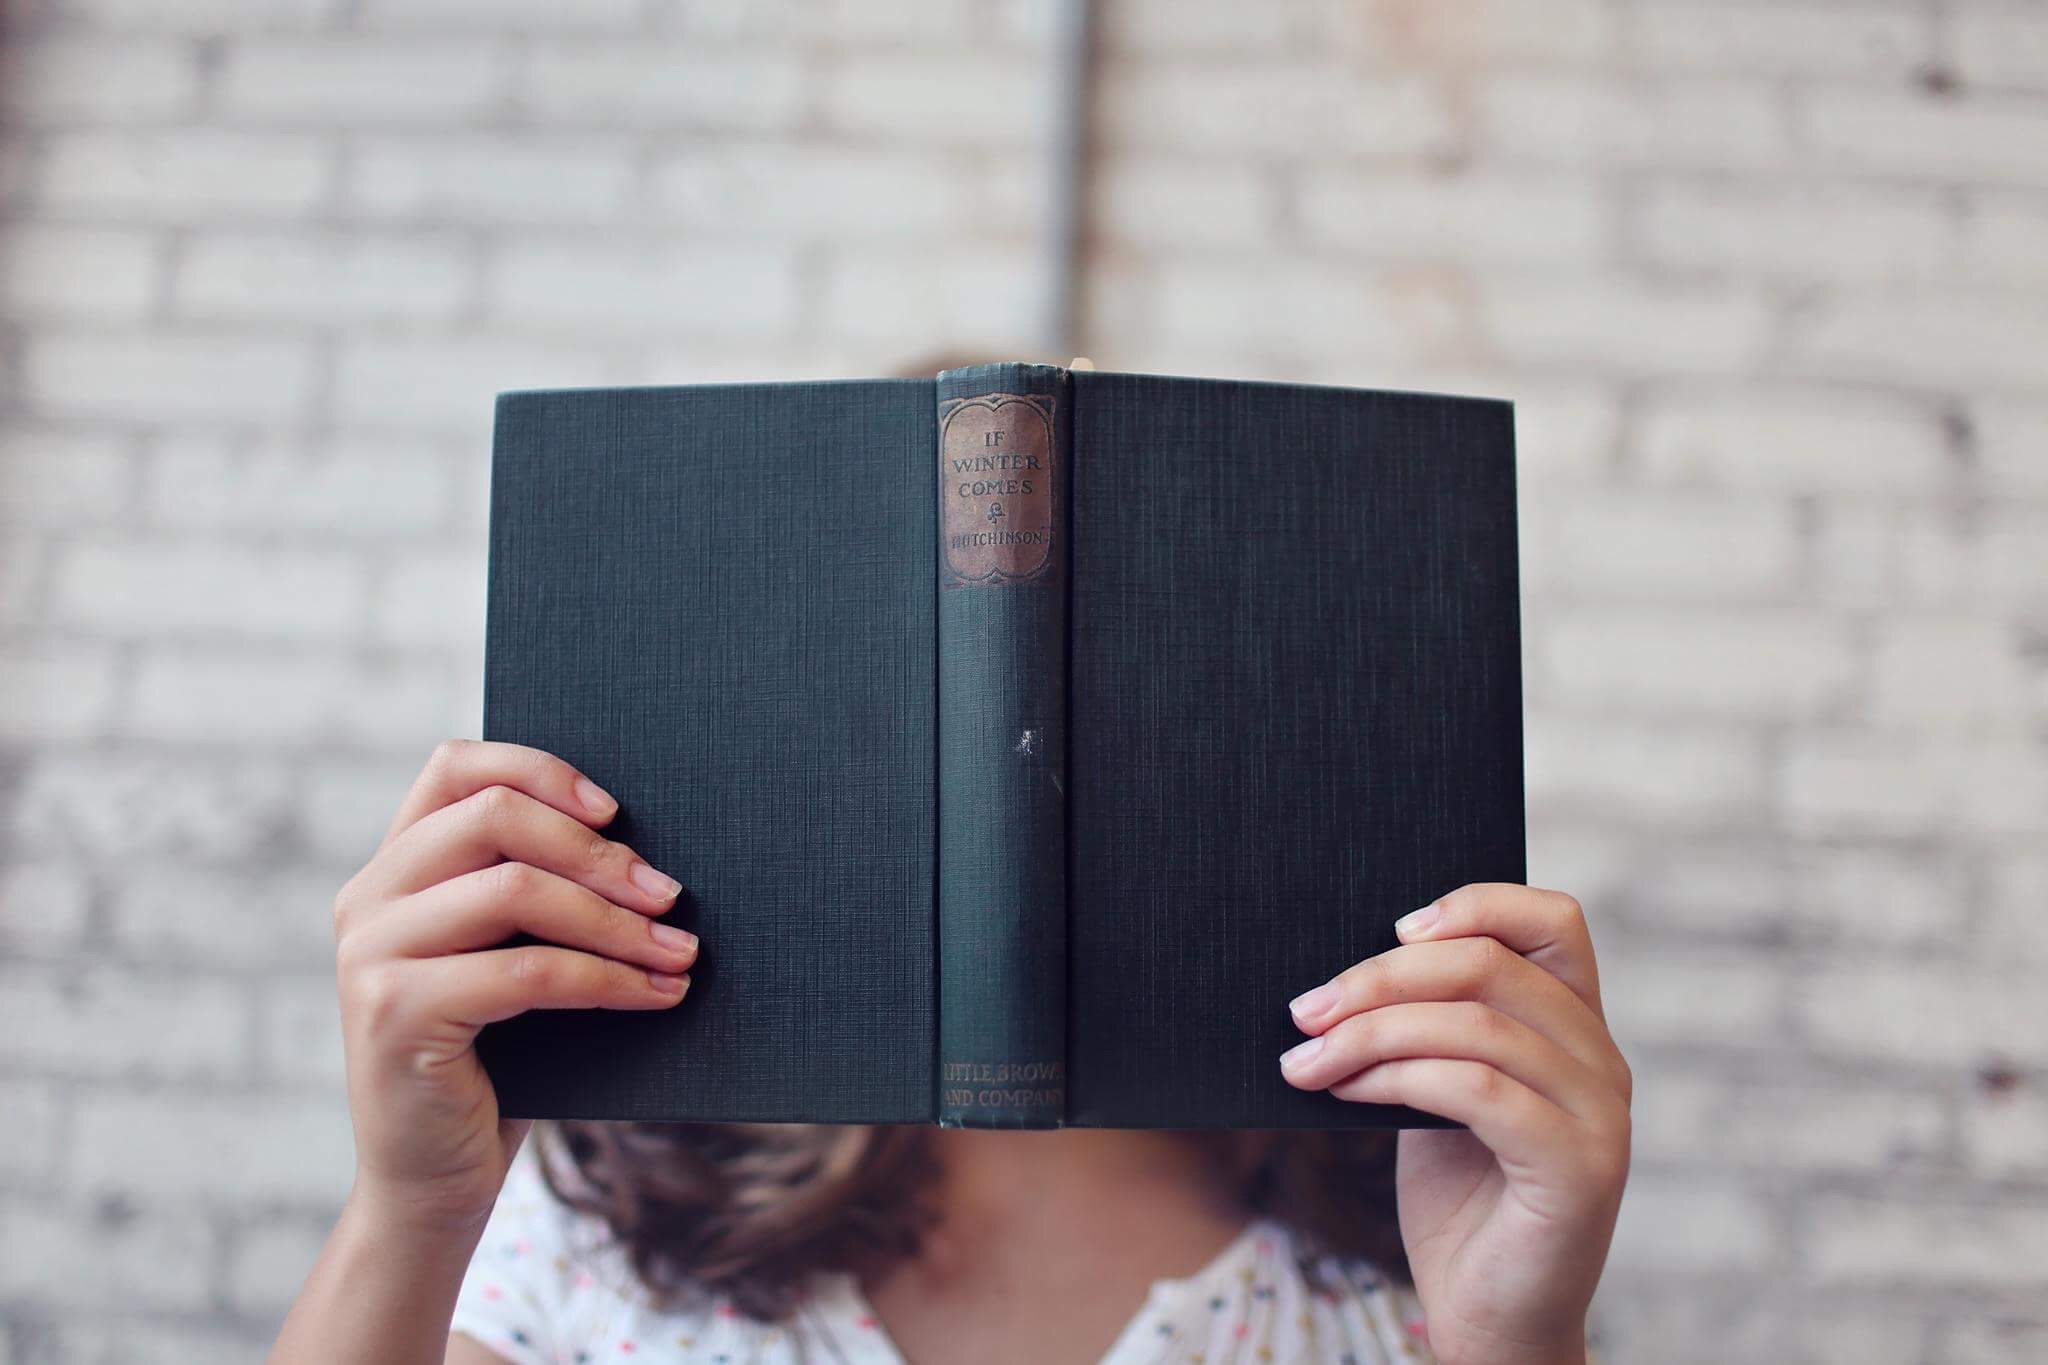 woman holding a book open in front of her face